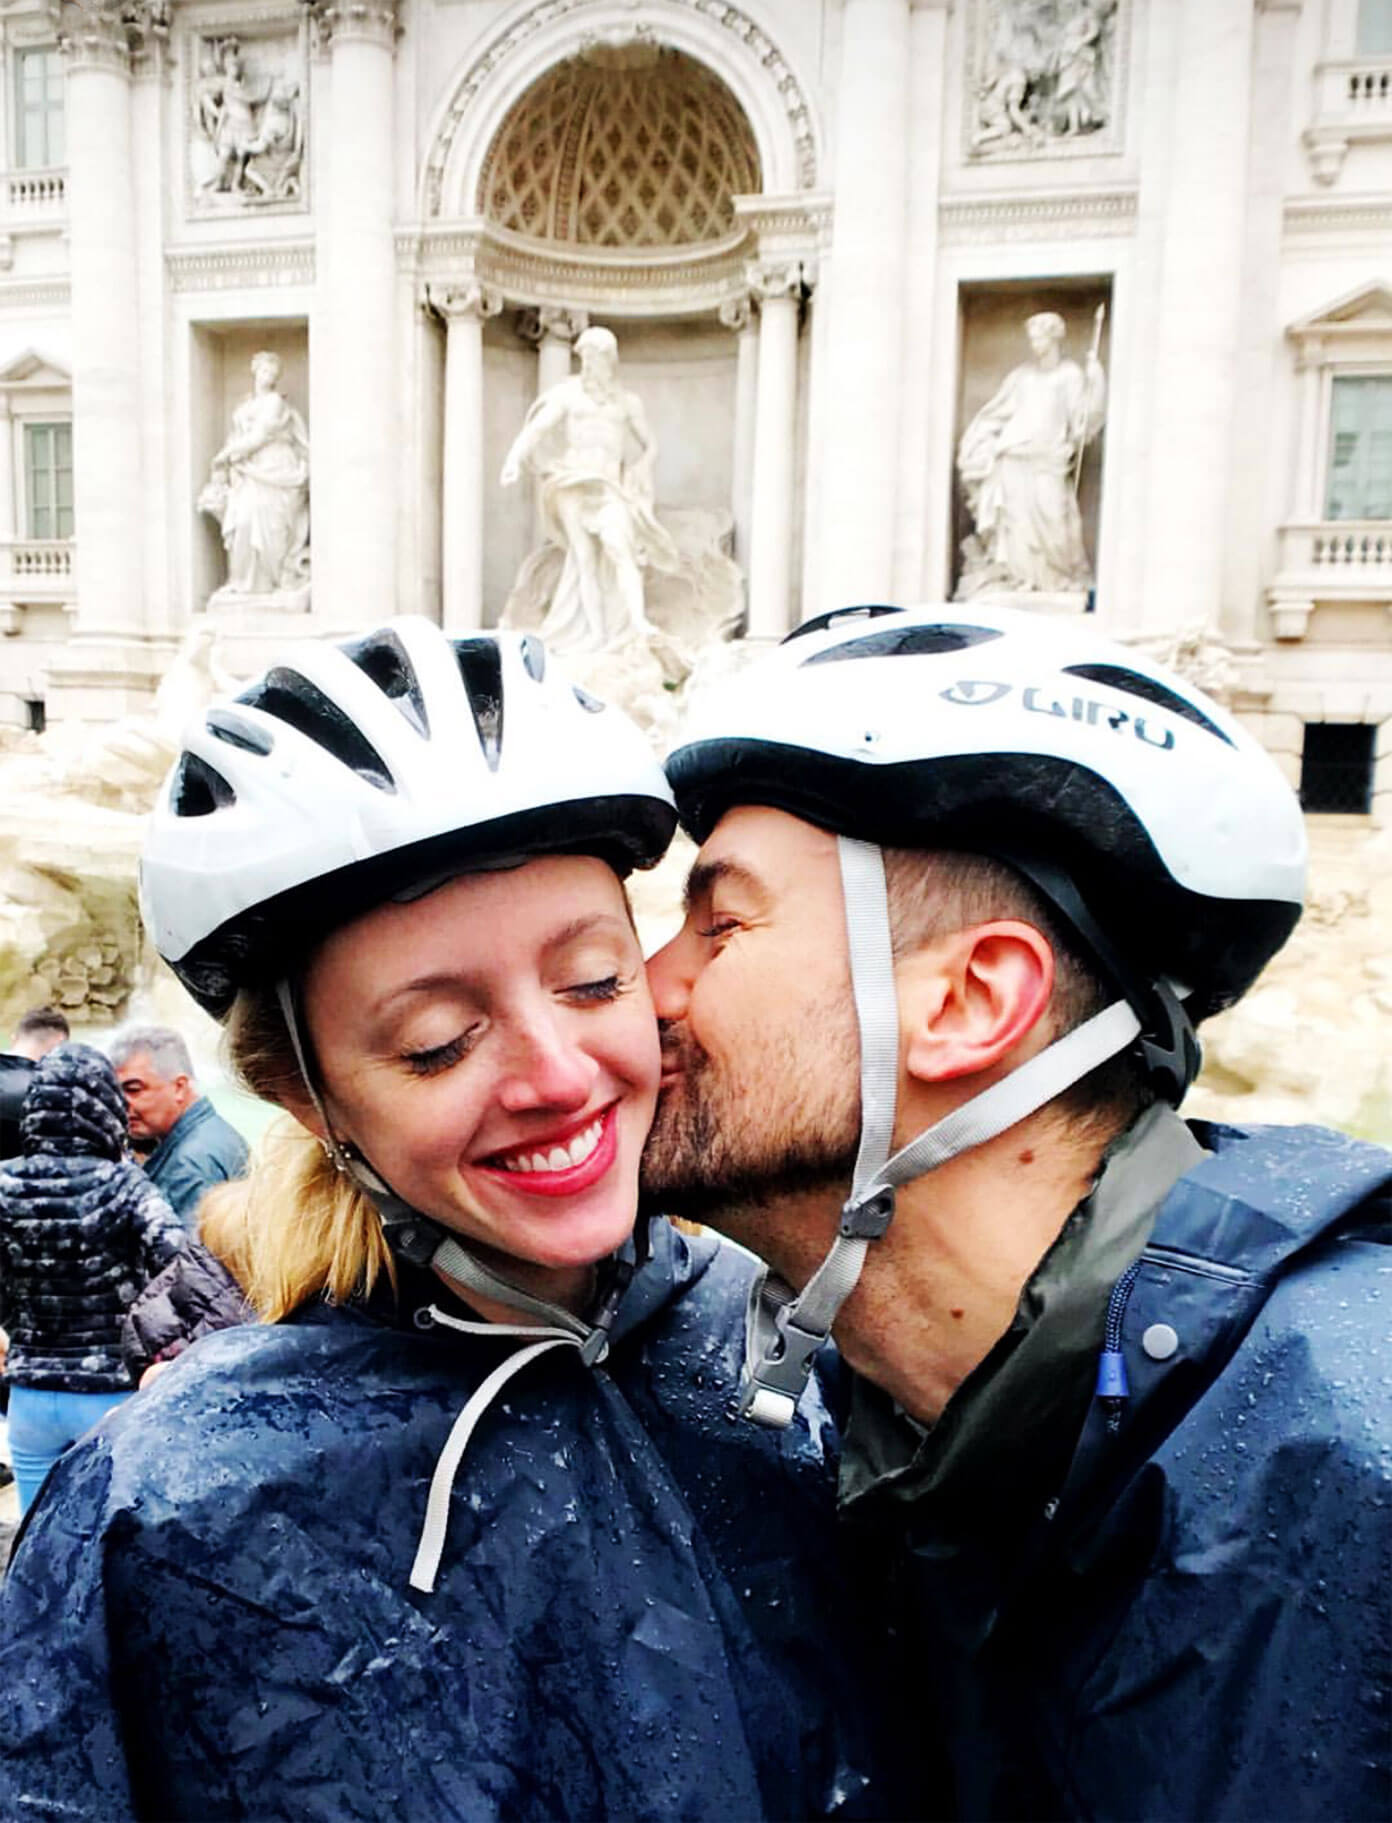 Stopping by Trevi Fountain on our bike tour in Rome